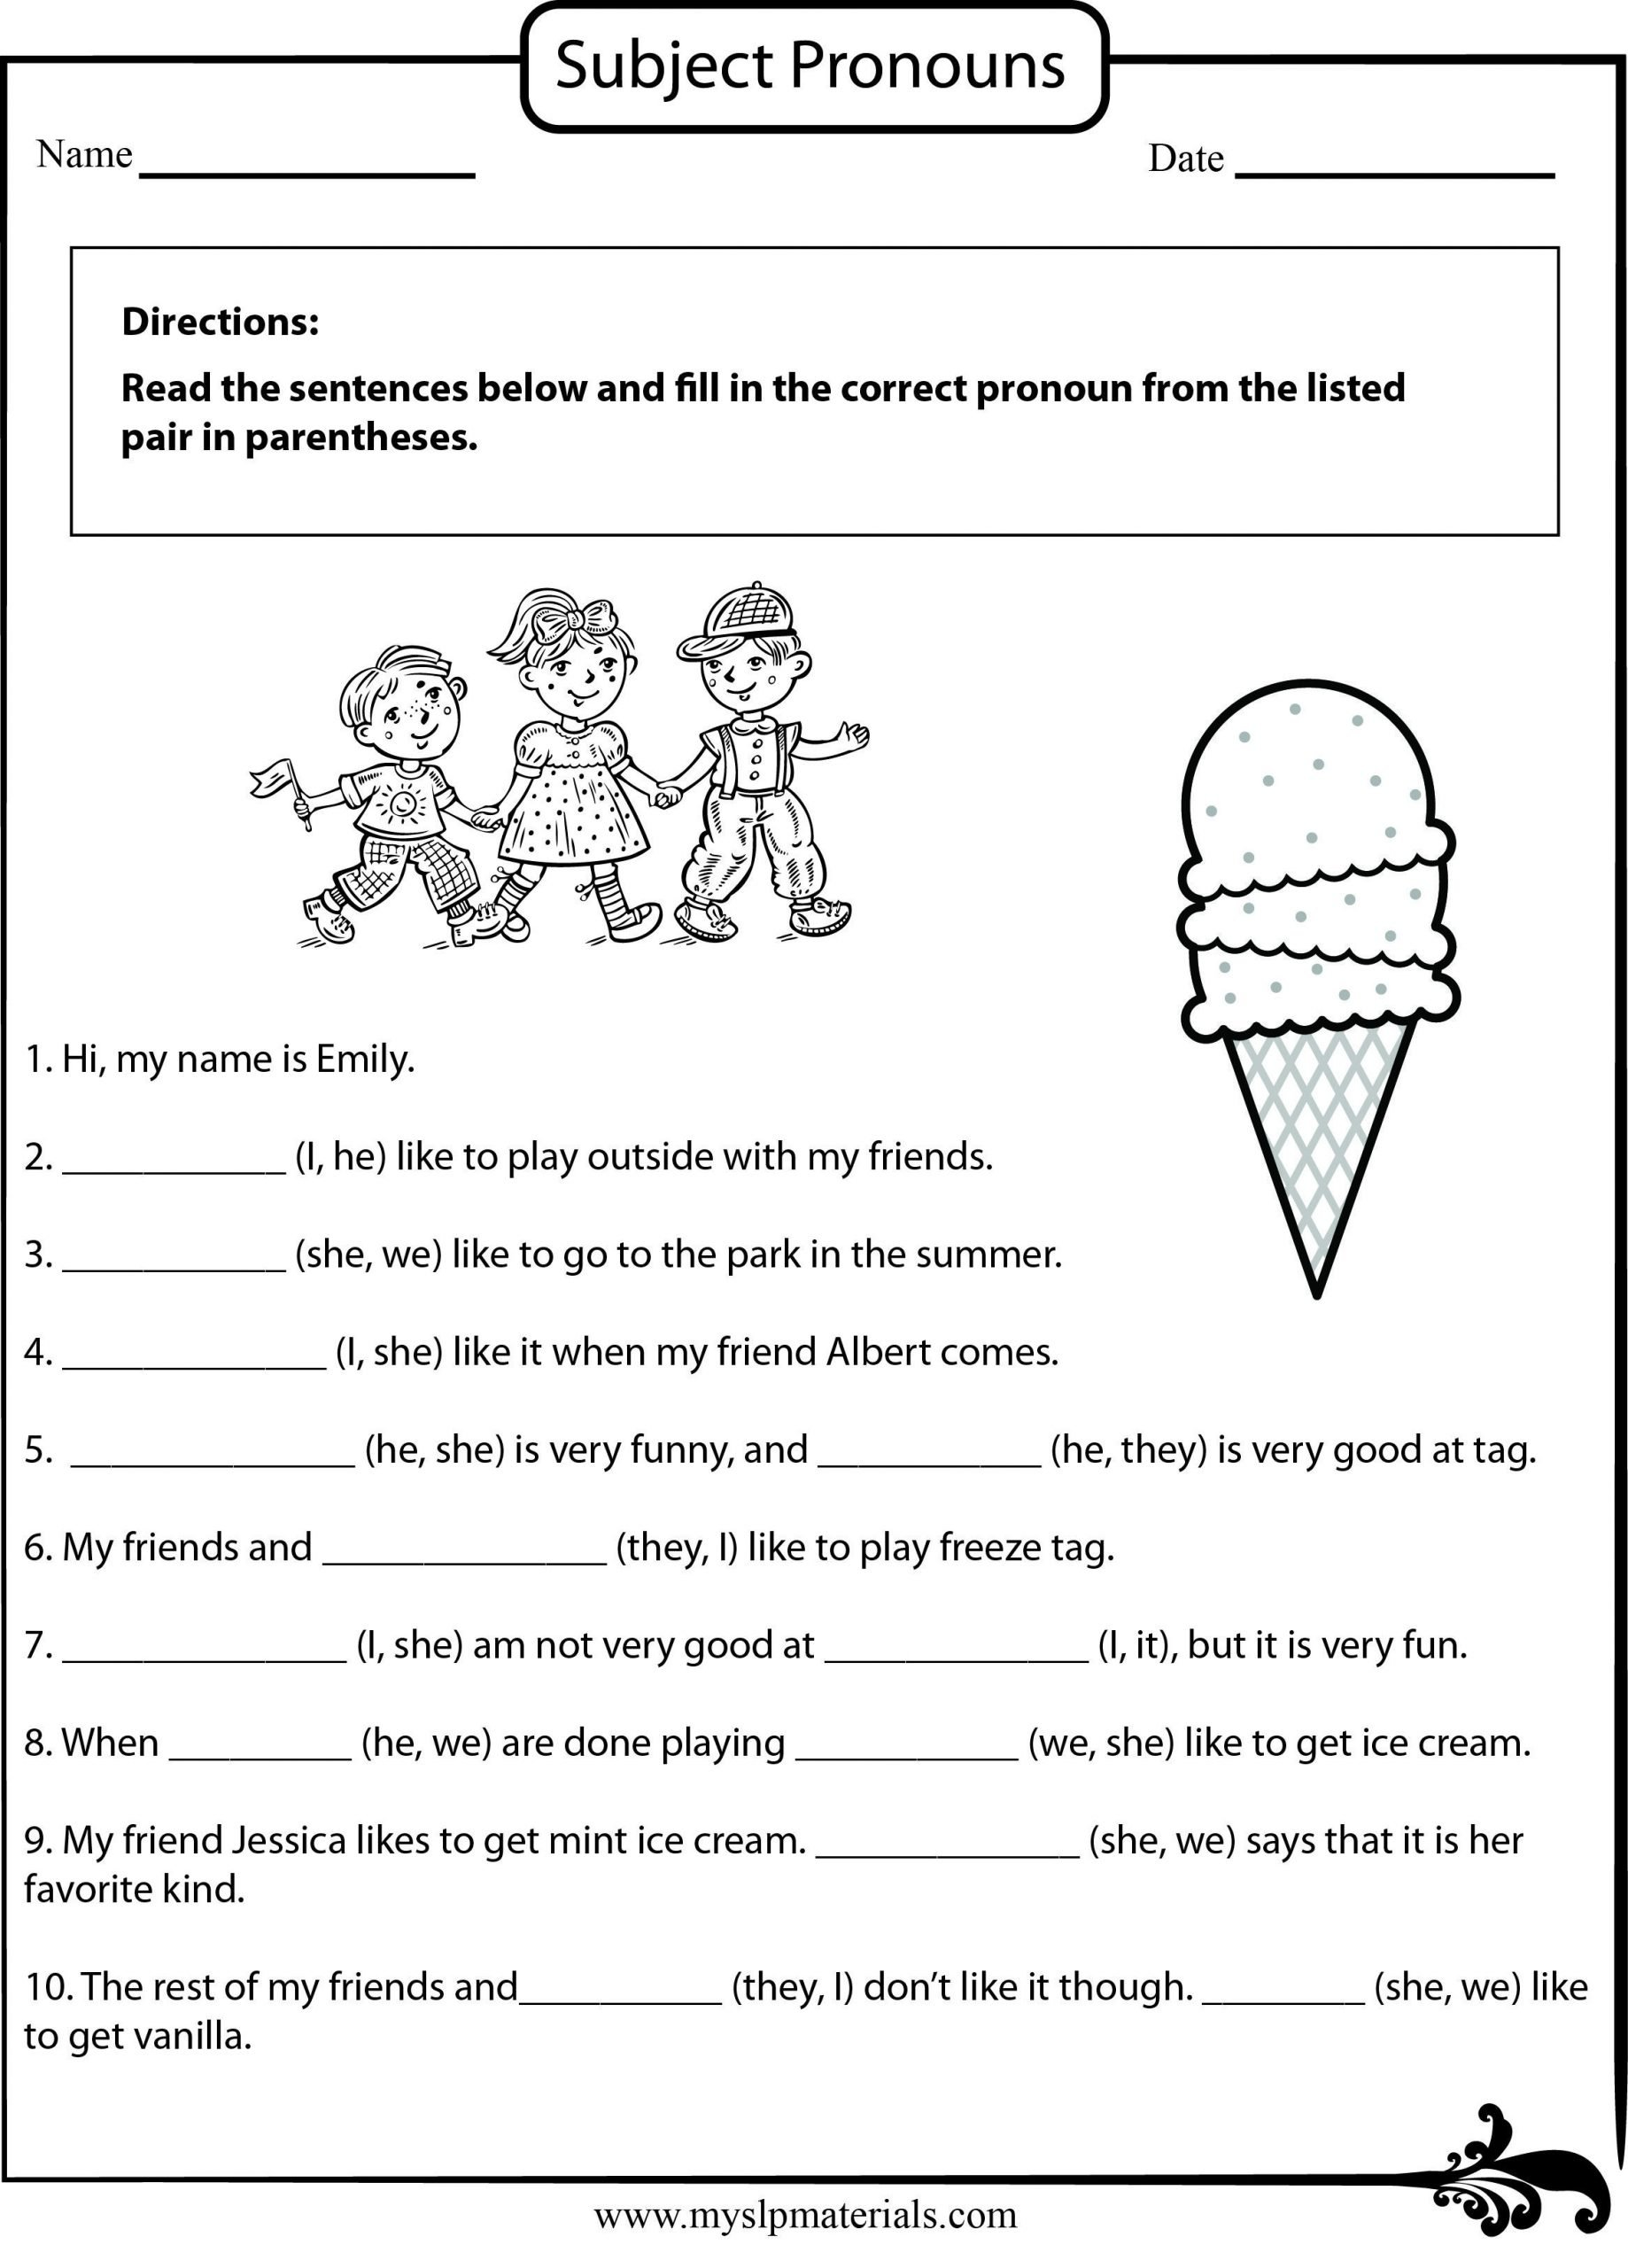 Pronoun Worksheets 2nd Grade Subject Pronoun Speech